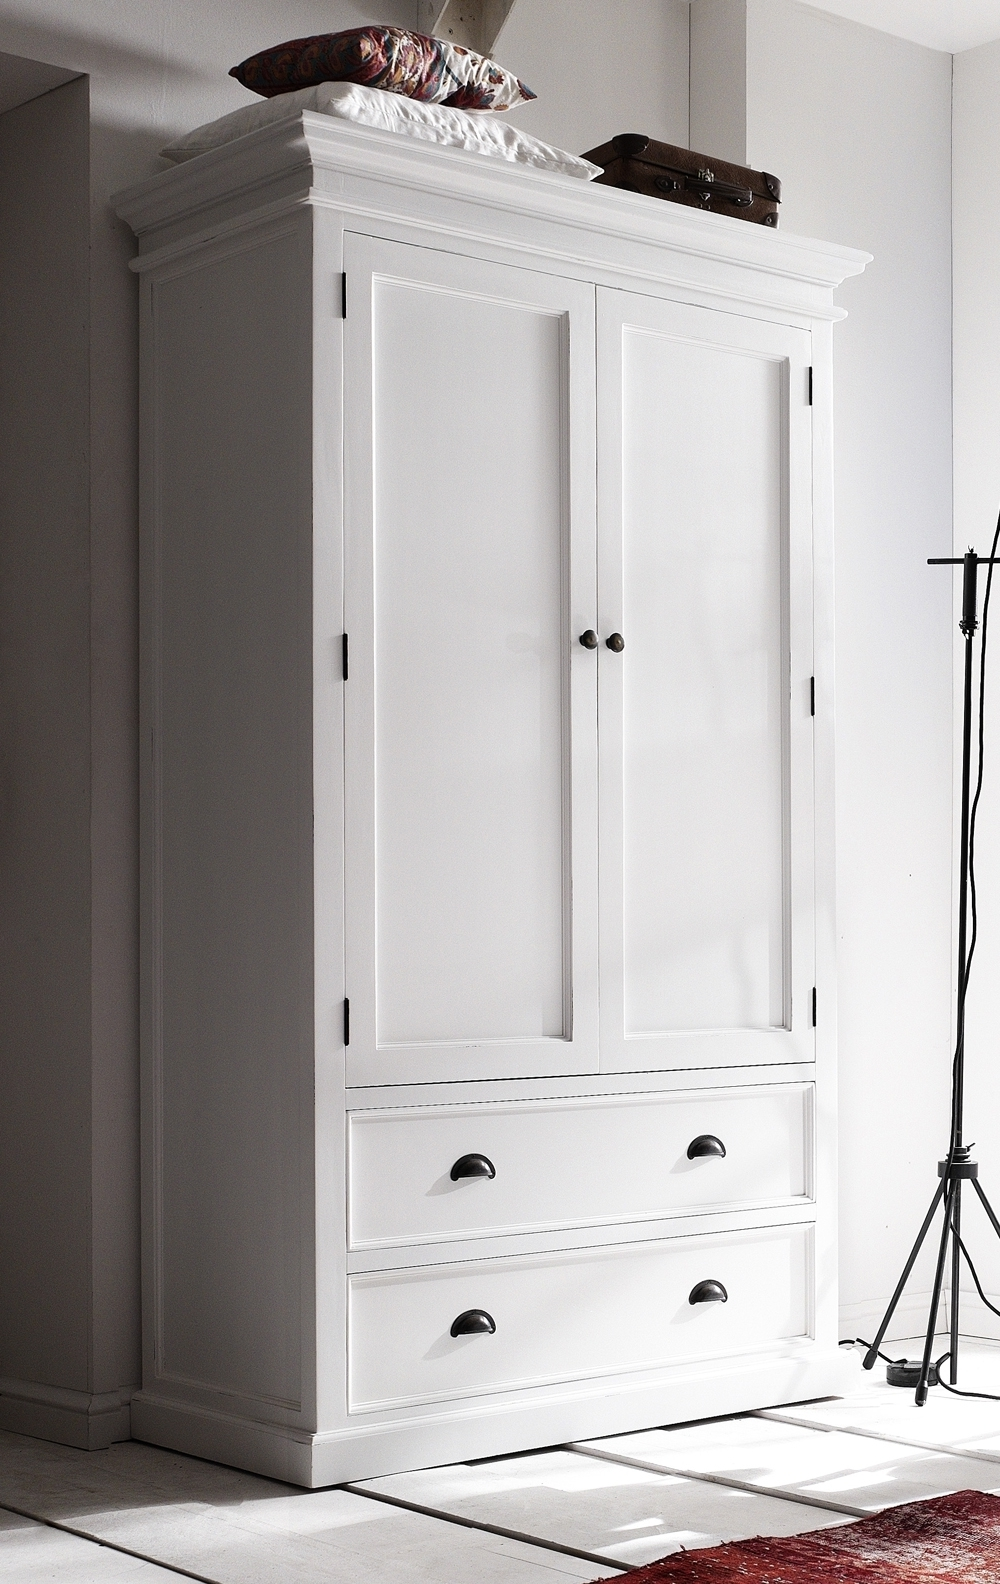 With The Best Solution To Practical But Elegant Design, The Within Newest White Double Wardrobes With Drawers (View 2 of 15)